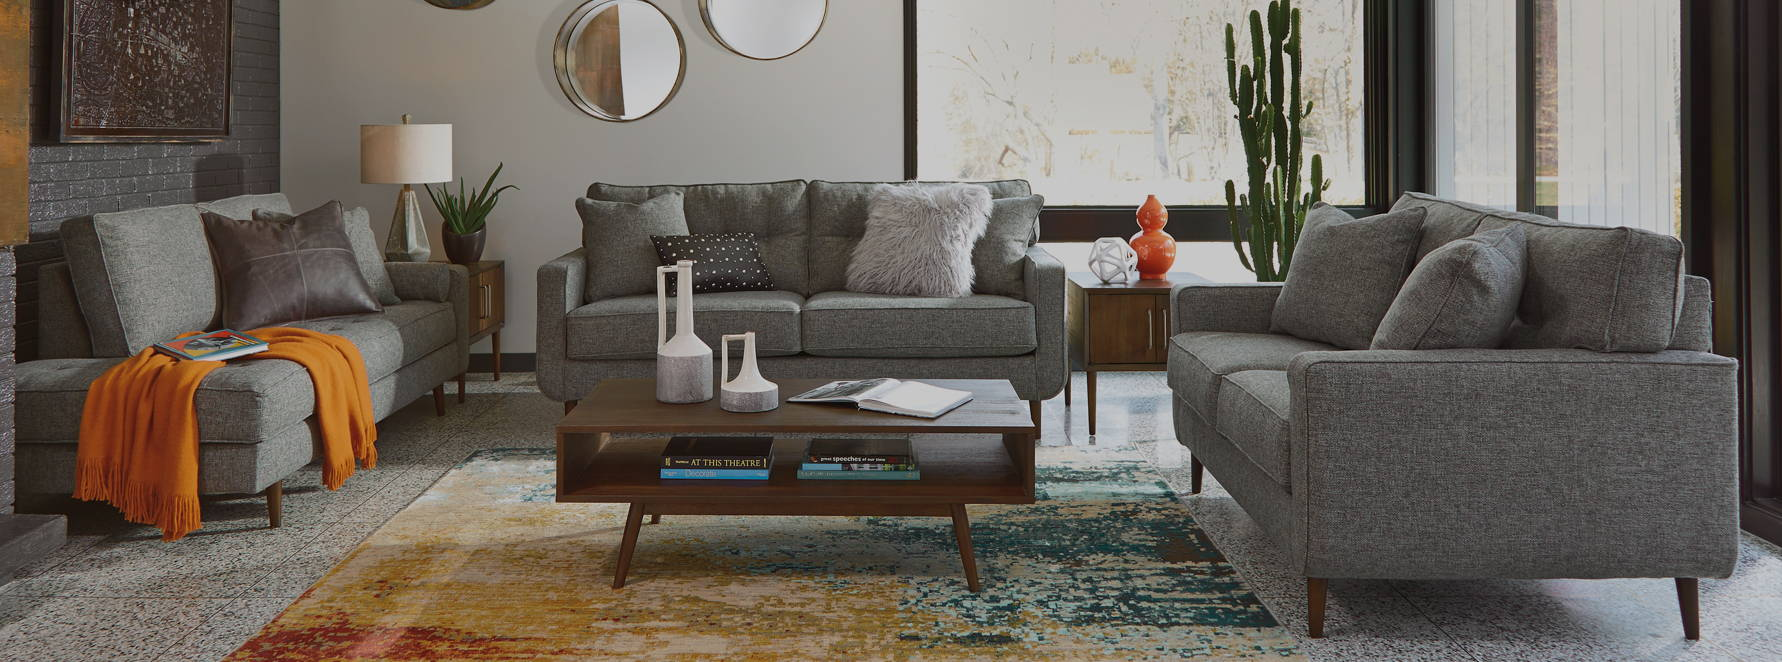 sectionals accent swivel couch chairs chair sofas for sofa small room two design living set furniture leather sets comfortable modern corner and best ideas table full size half